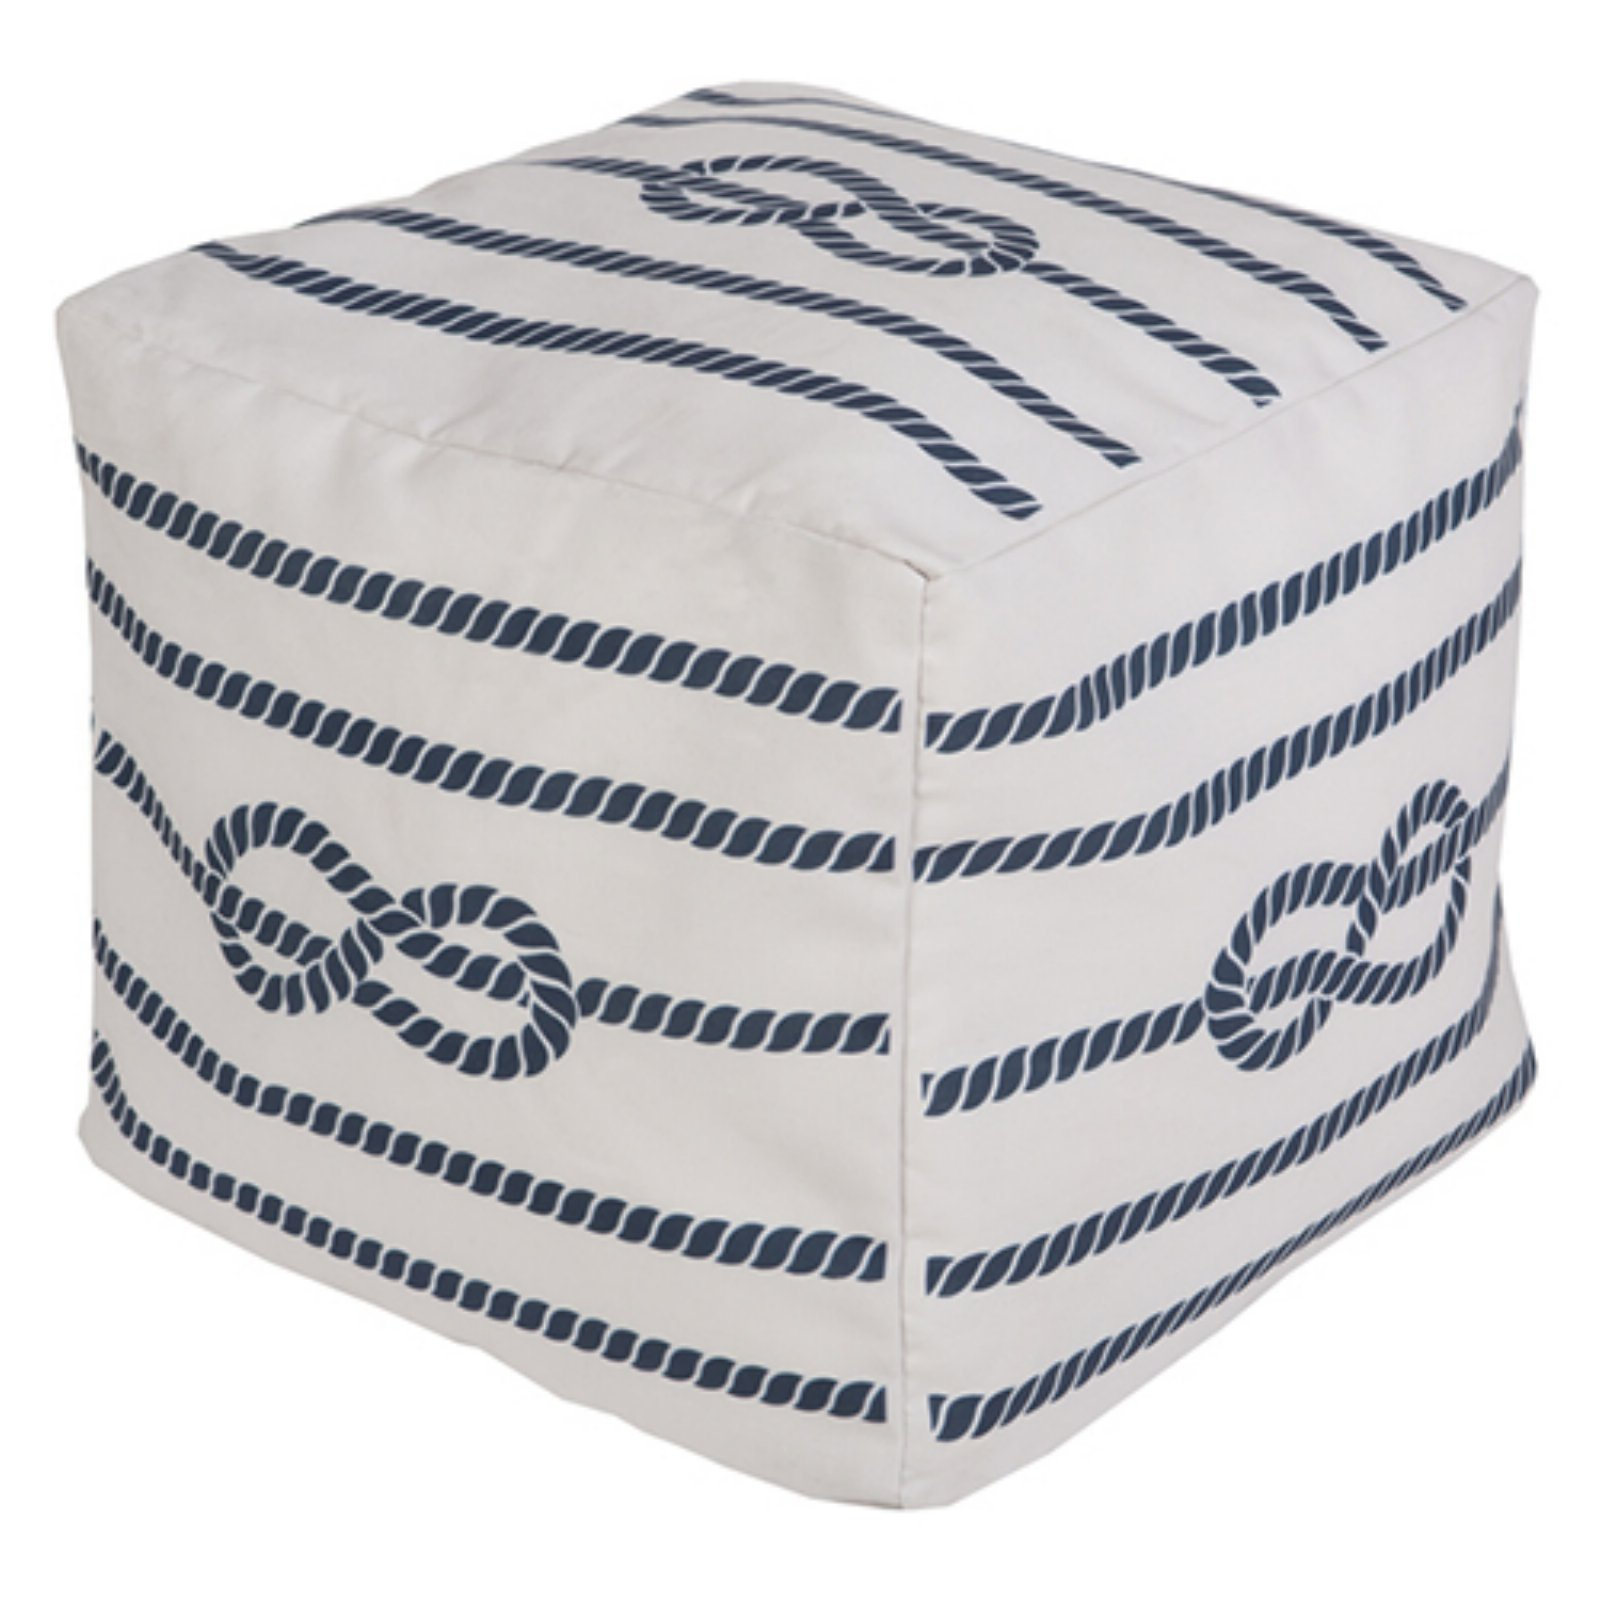 Surya 18 x 18 in. Outdoor Rope Cube Pouf by Surya